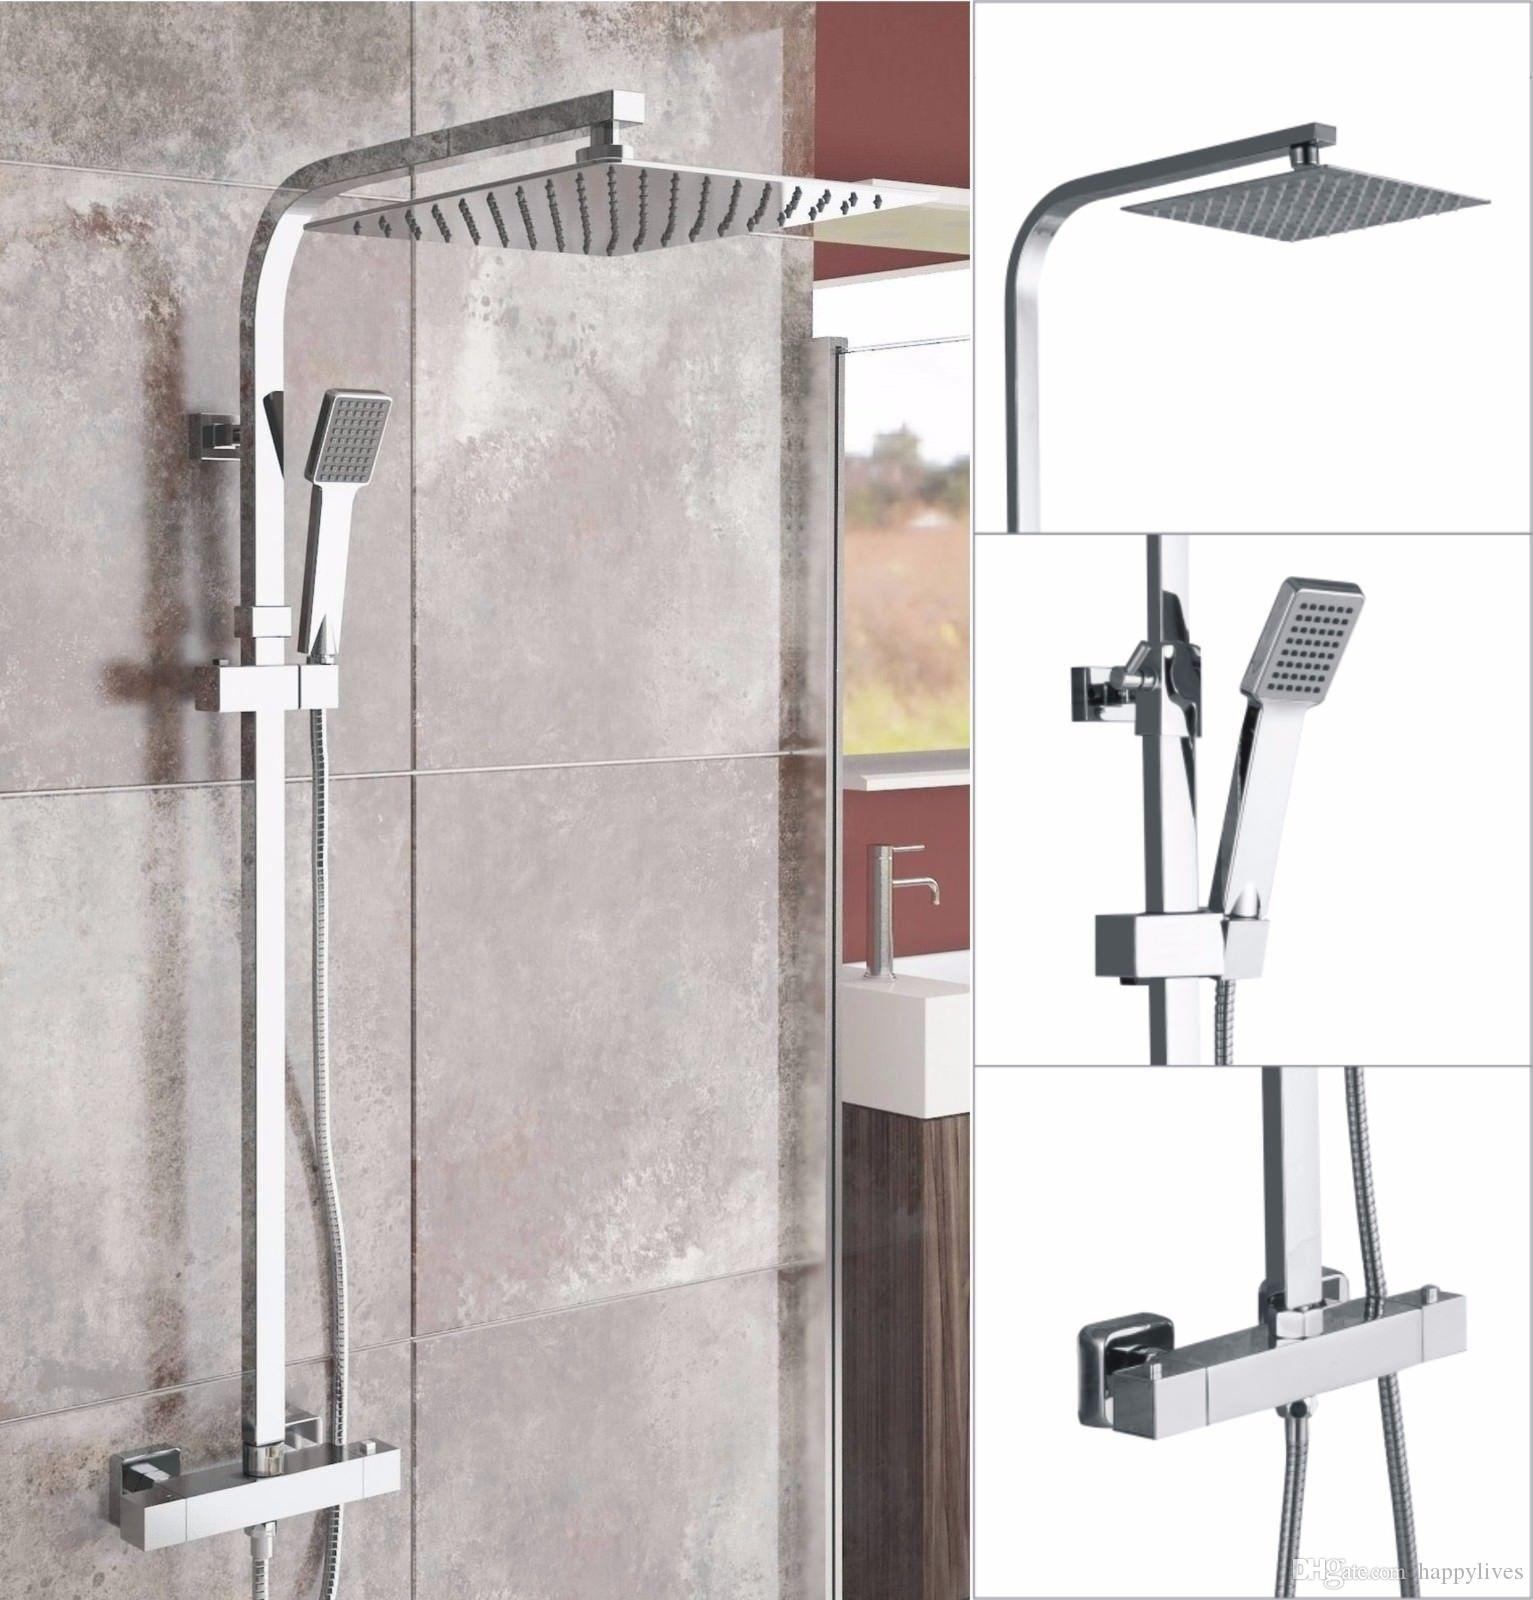 Shower Head And Valve.2019 Thermostatic Shower Mixer Square Chrome Bathroom Exposed Twin Head Valve Set From Happylives 90 45 Dhgate Com